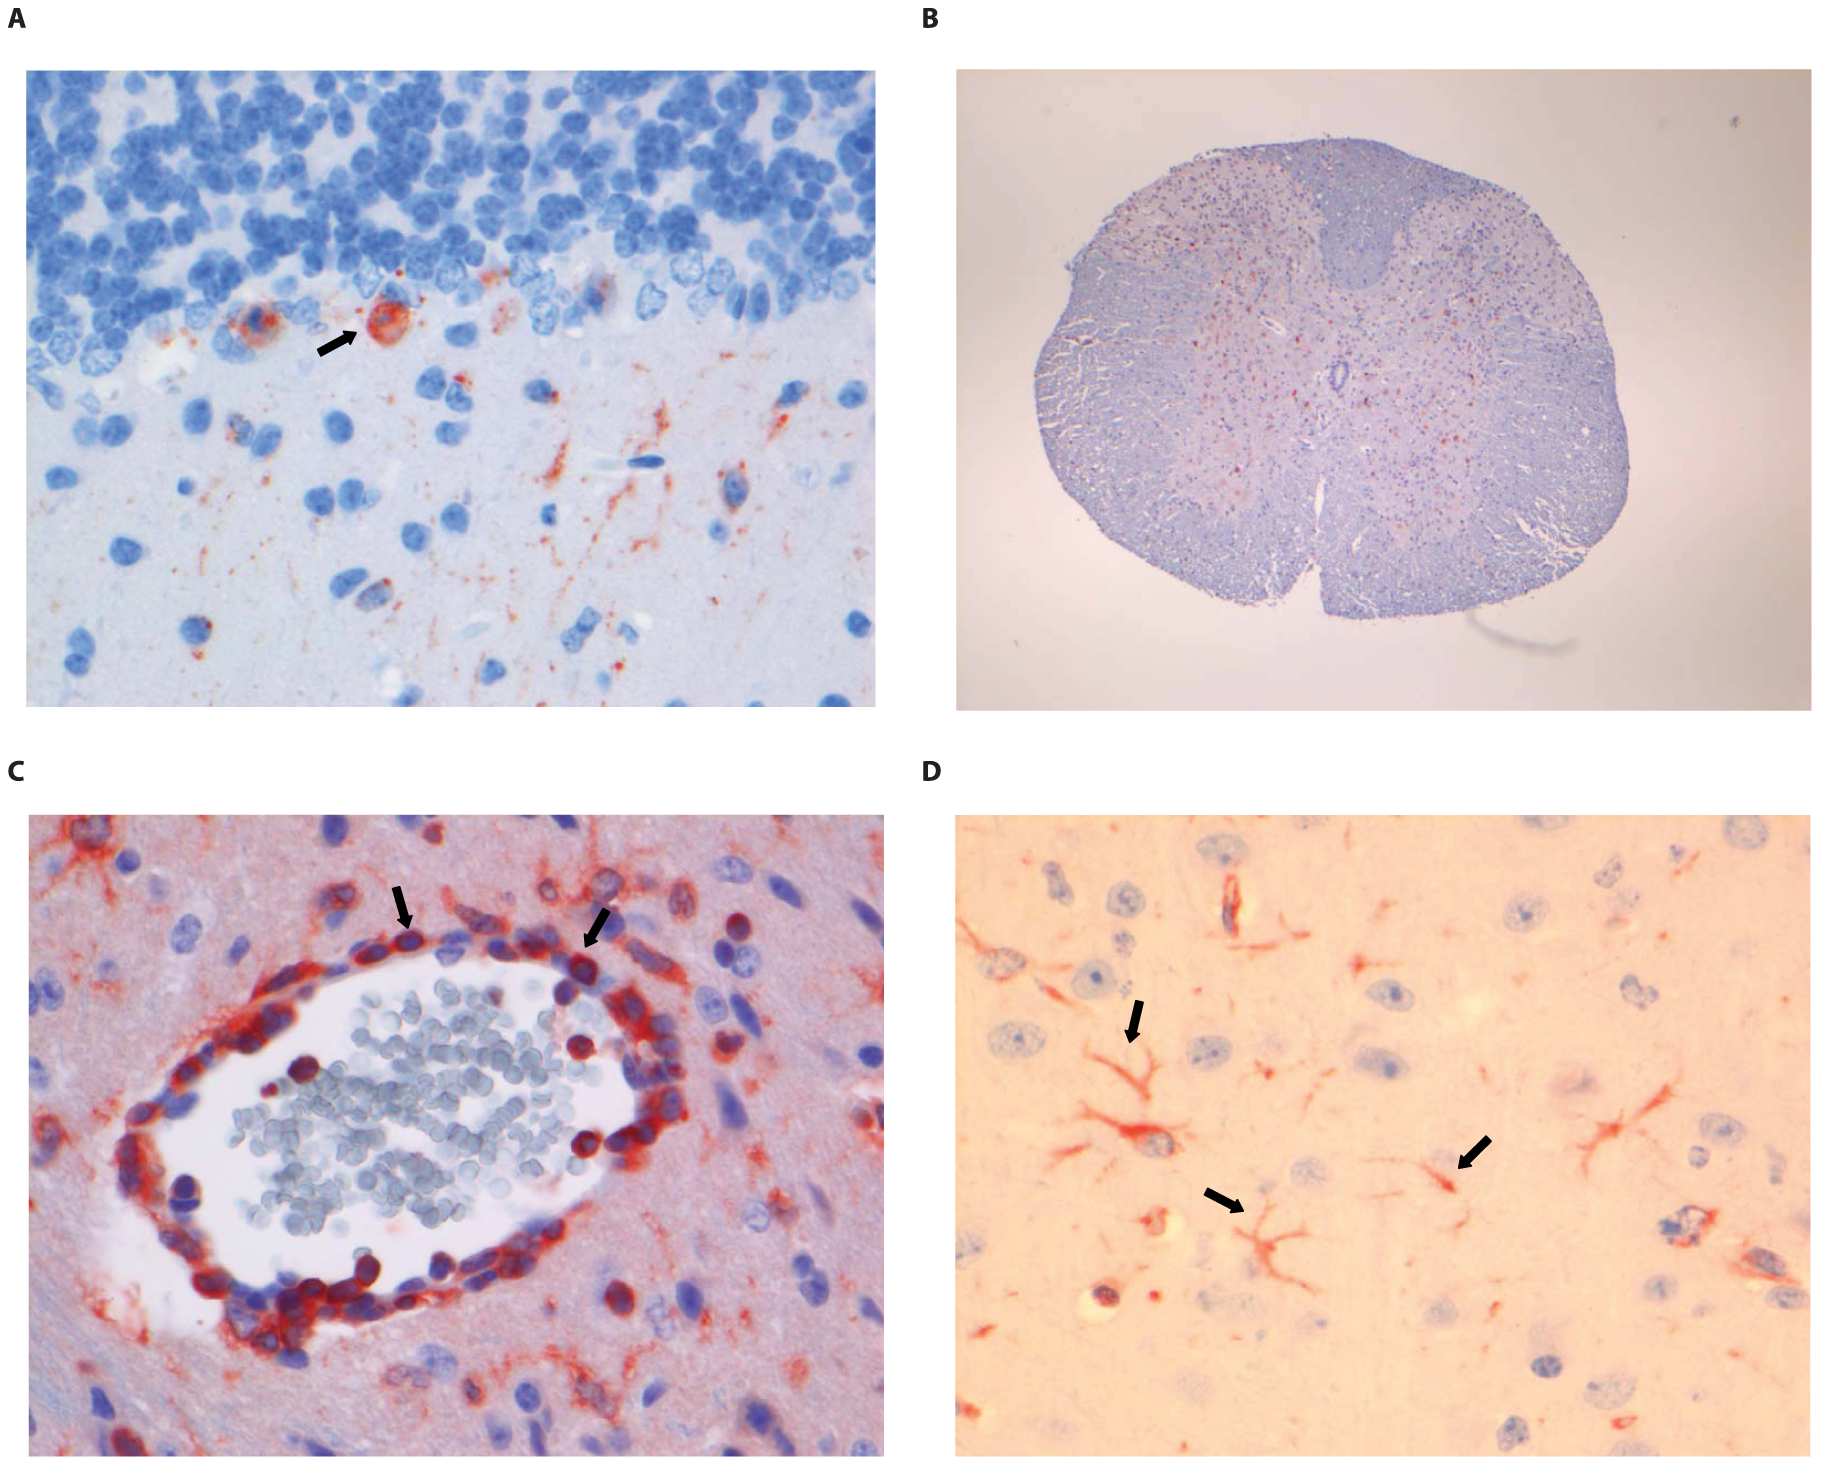 Histopathology of 8-week old BALB/c mice infected i.m. with 10<sup>6</sup> TCID<sub>50</sub> of RABV-PV.